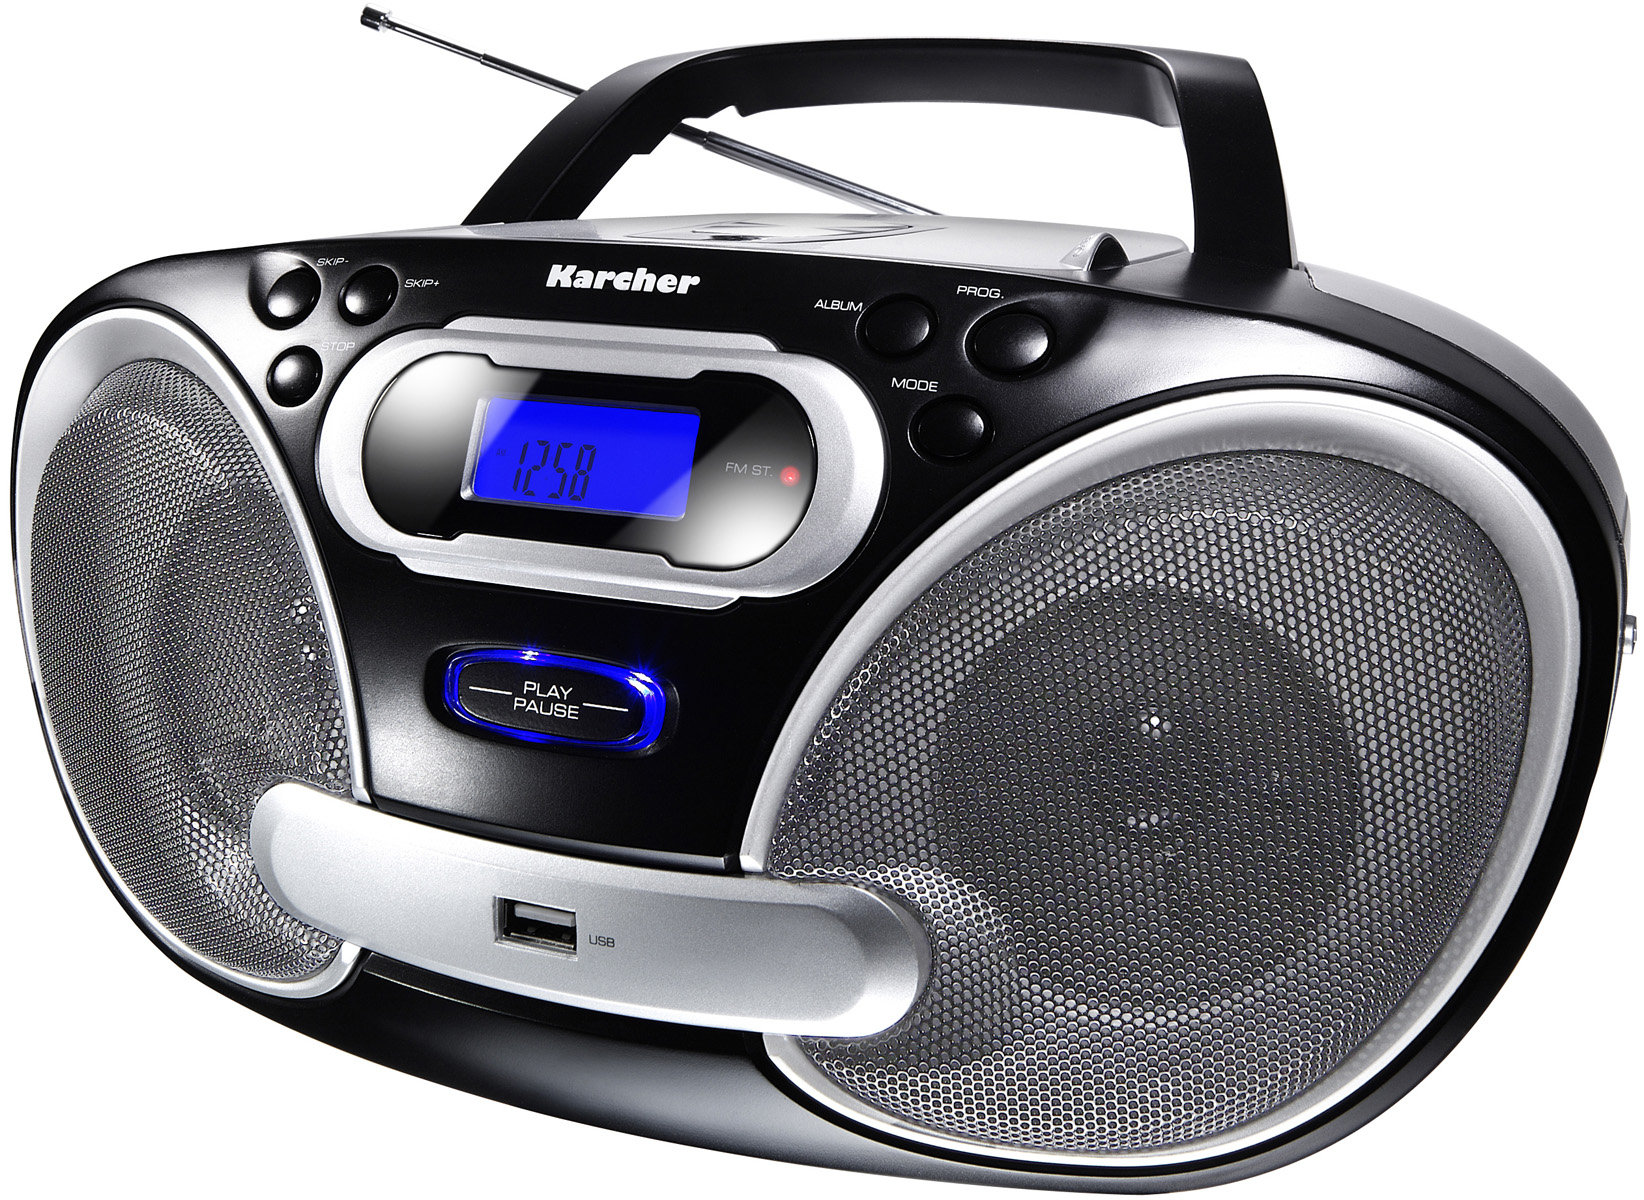 Karcher rr5050 stereo portatile con radio fm cd mp3 usb for Radio con chiavetta usb